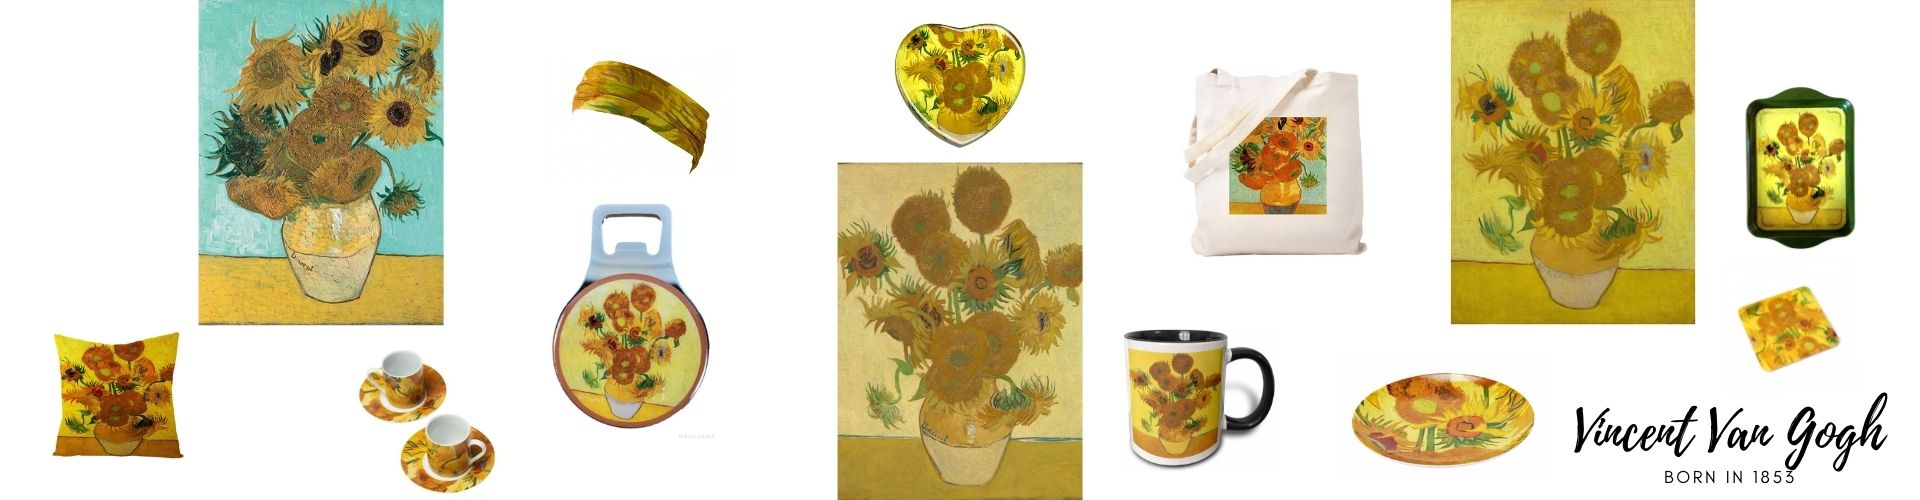 custom Sunflowers Souvenirs wholesale manufacturer and supplier in China